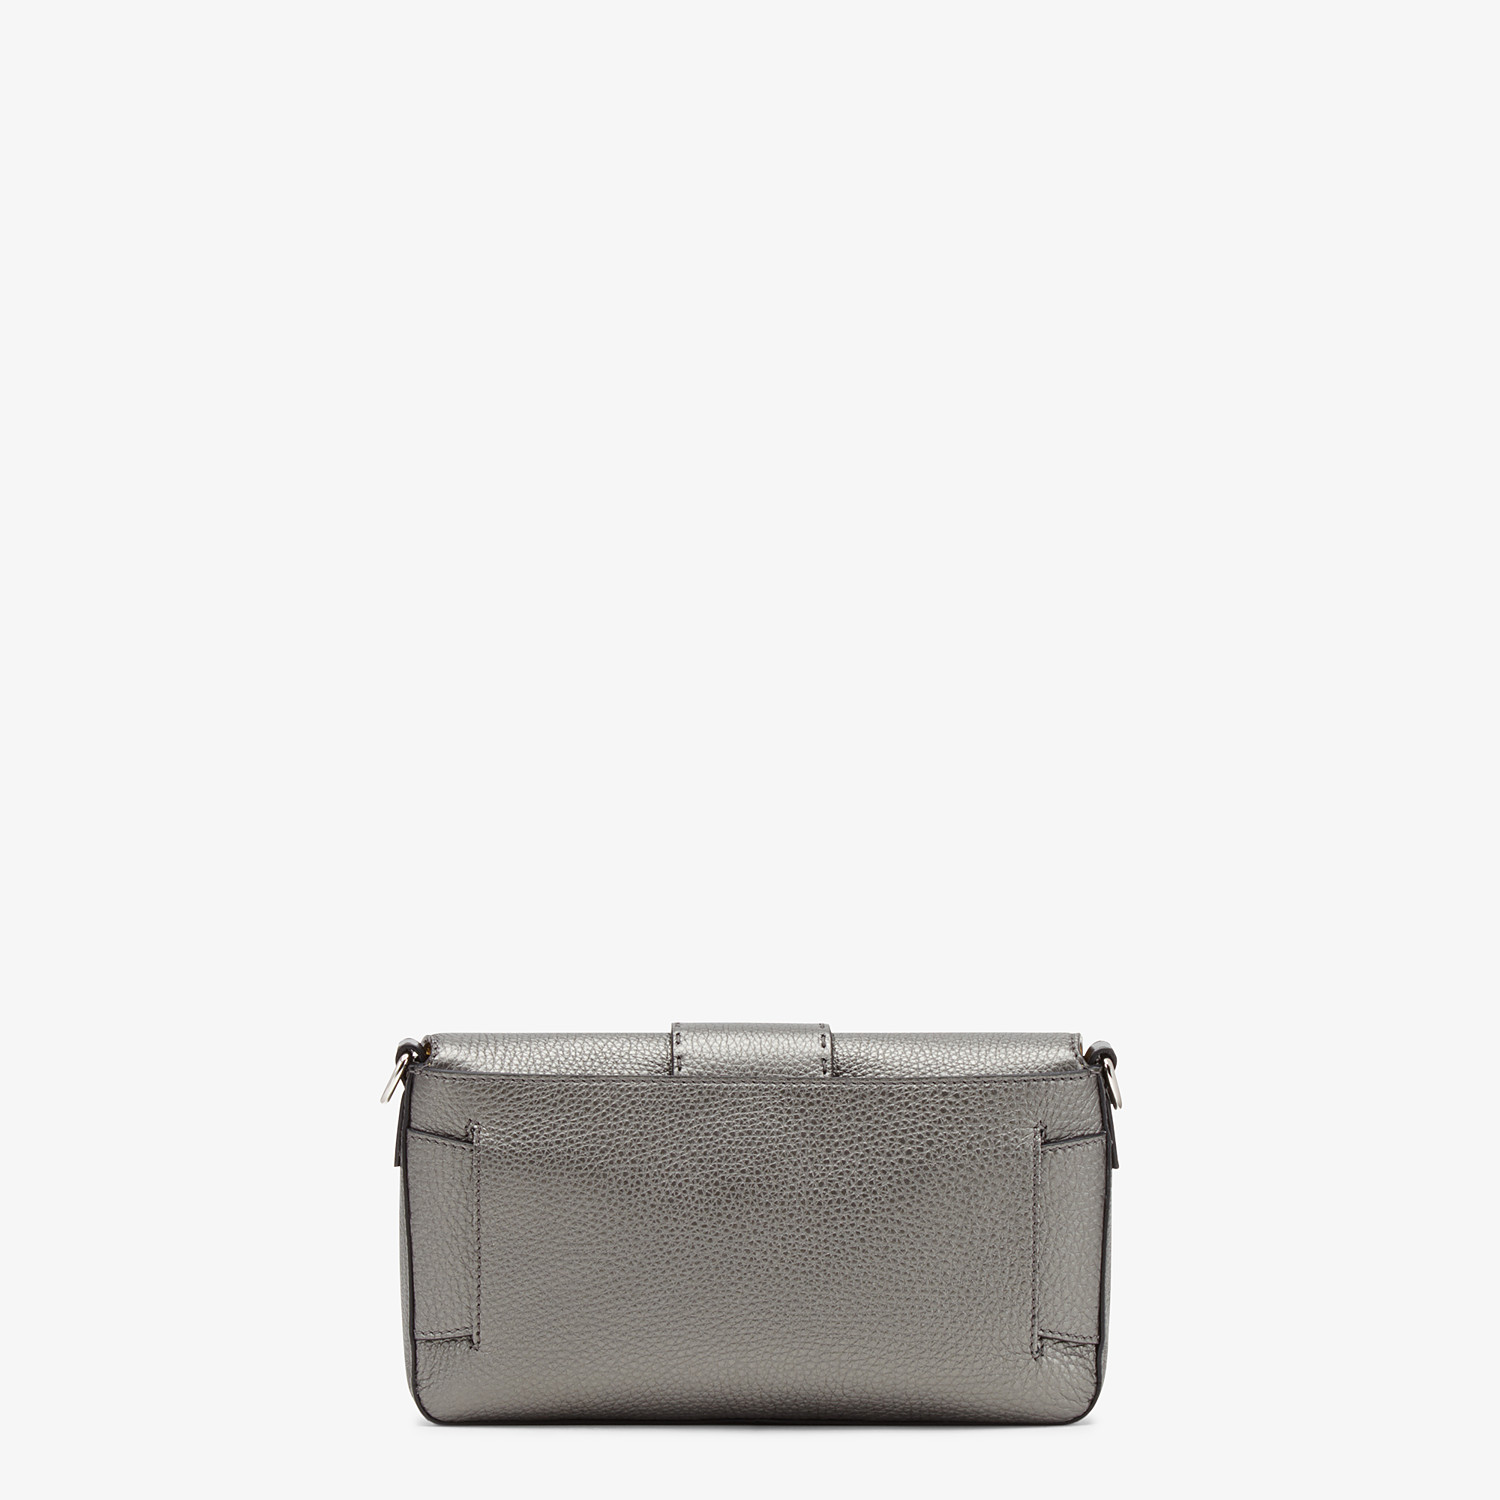 FENDI BAGUETTE - Grey leather bag - view 4 detail